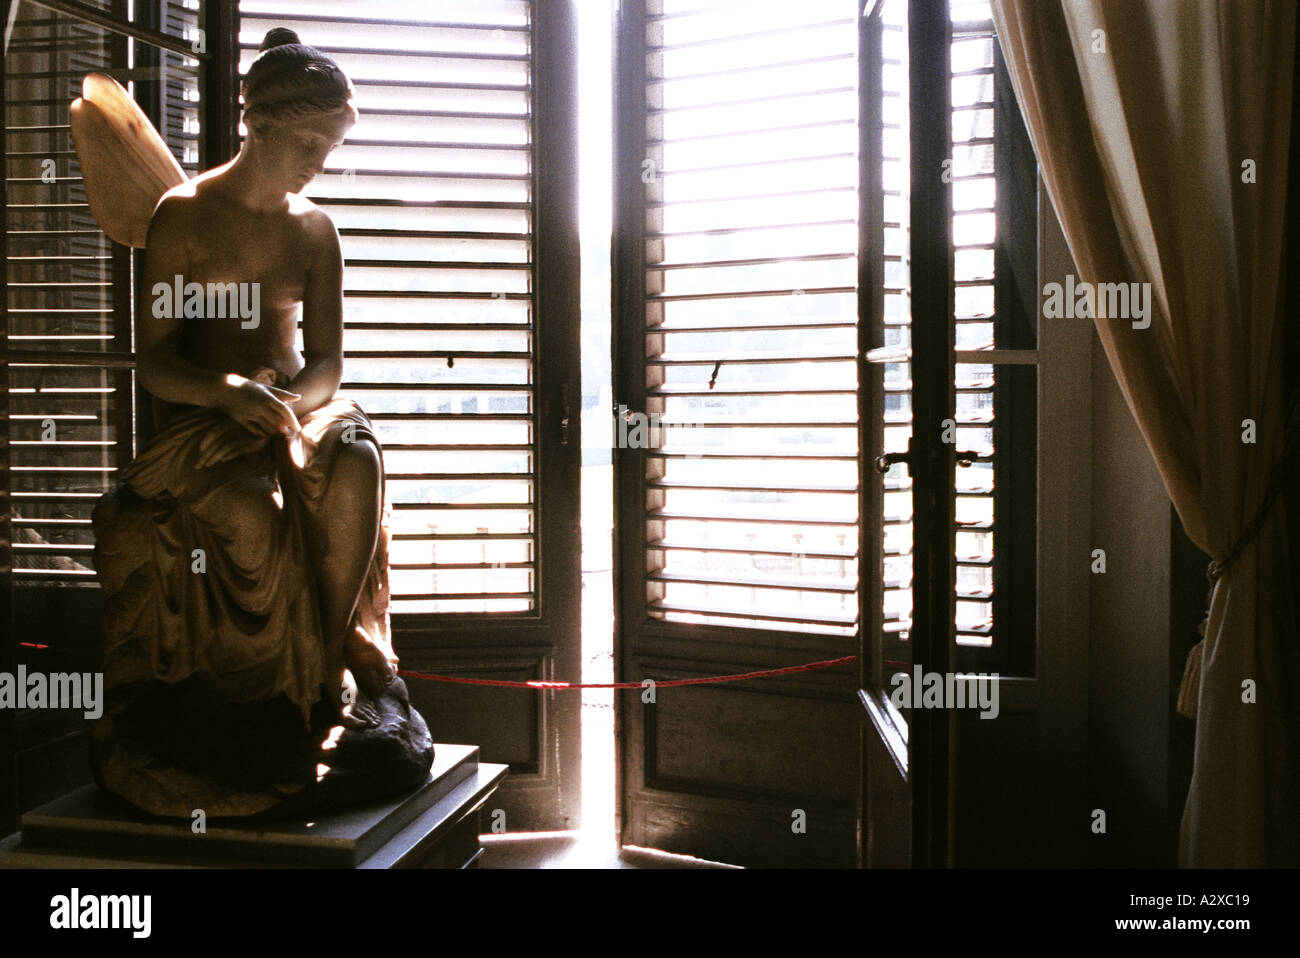 Carved Stone Statue Of Angel In Front Of Slightly Open Wooden Window  Shutters In Window In Florence, Italy